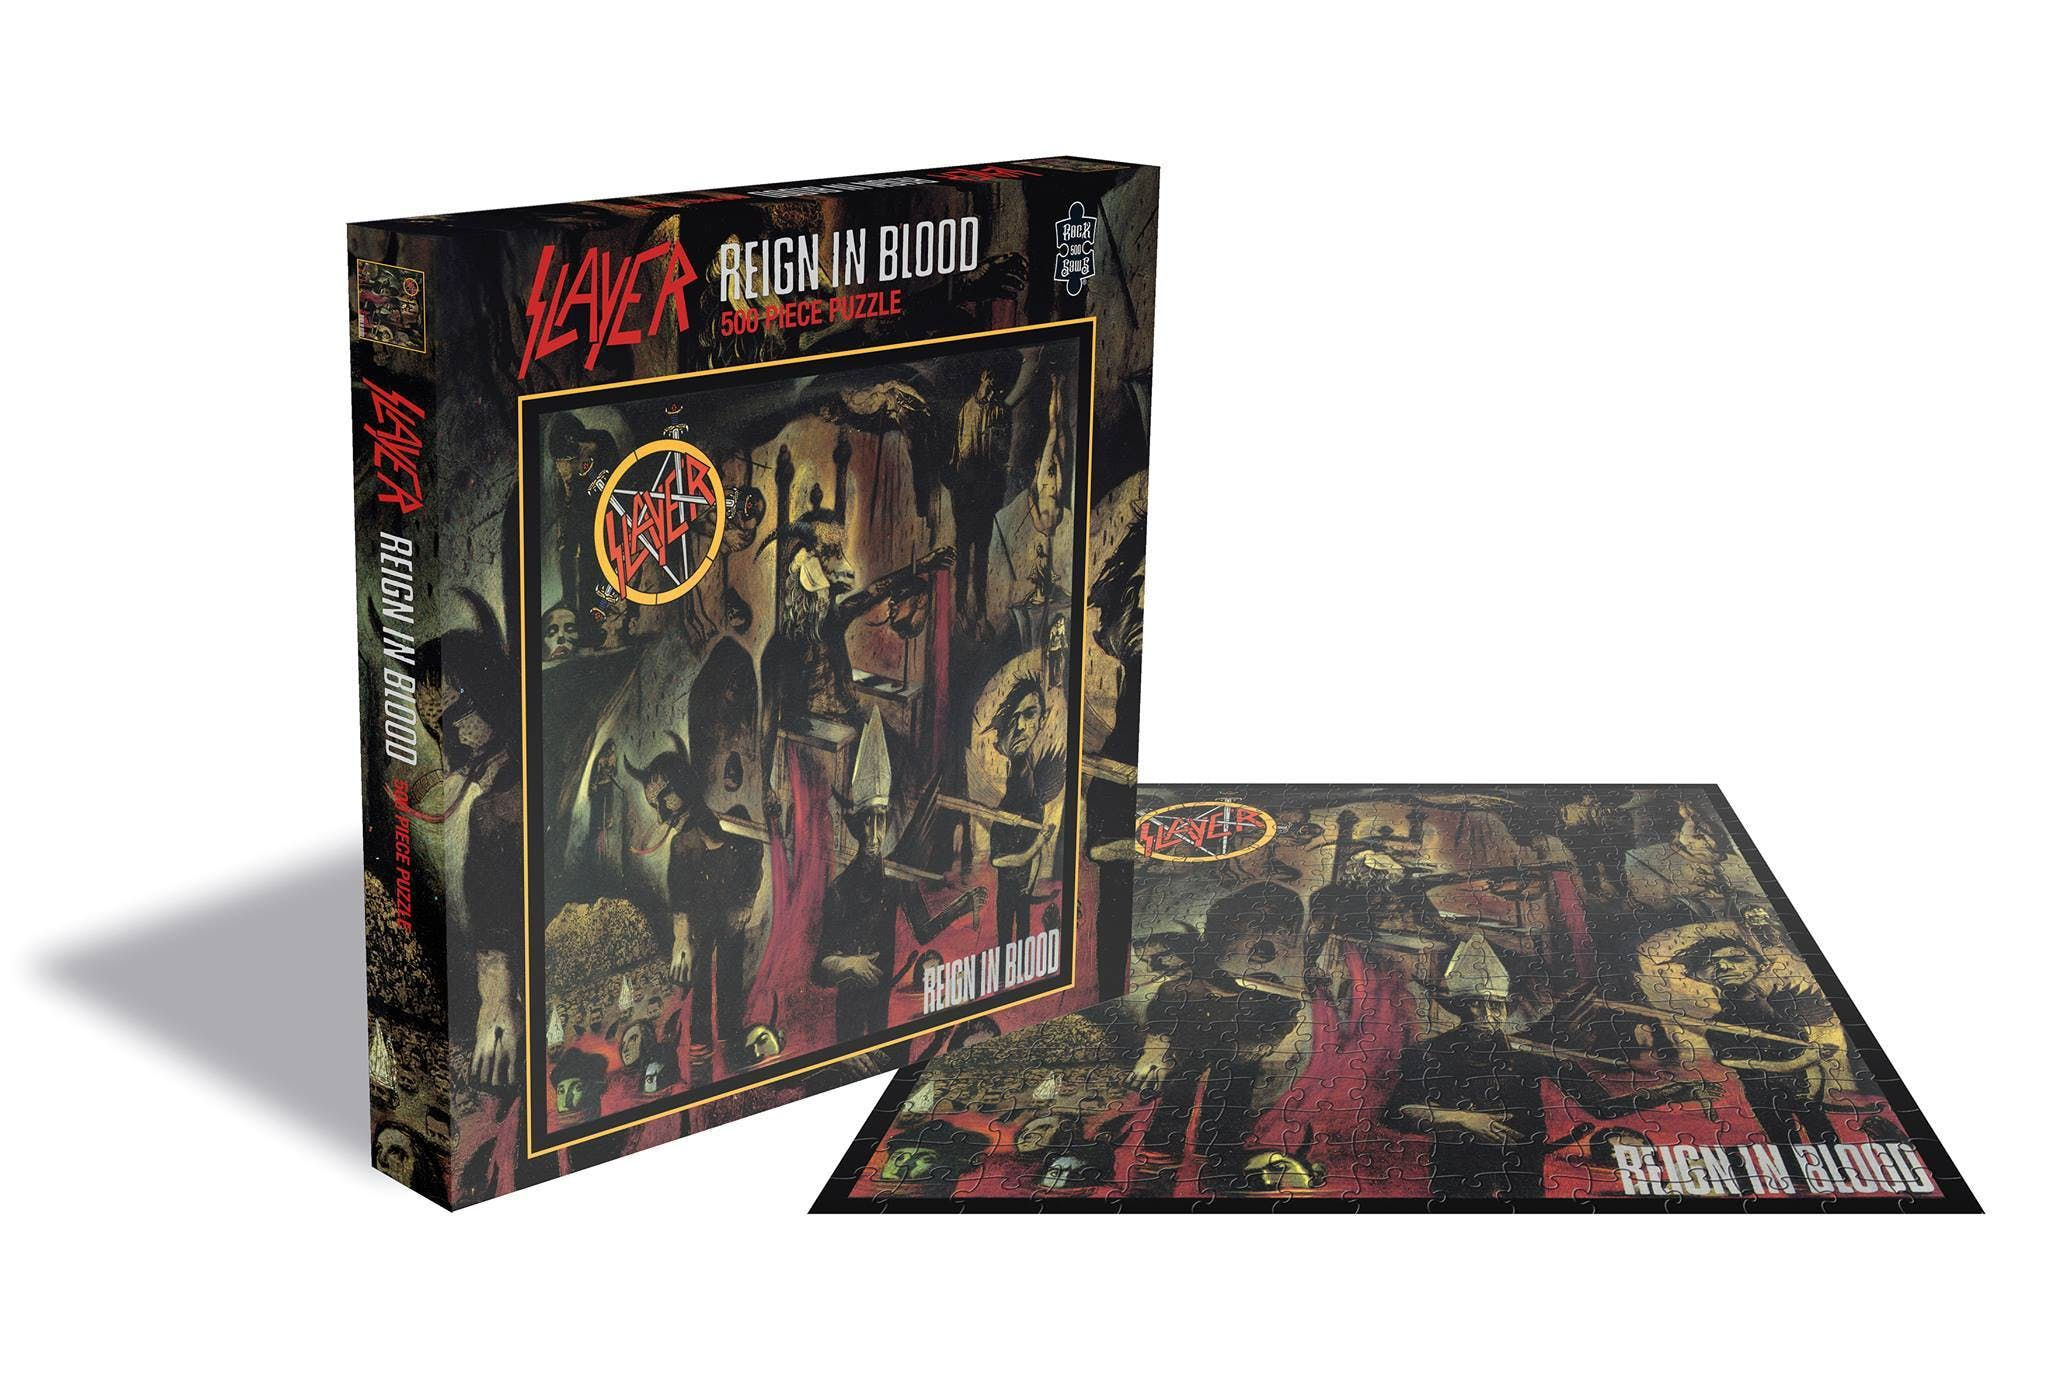 Slayer, Iron Maiden, Motörhead, and Judas Priest Jigsaw Puzzles Now Available